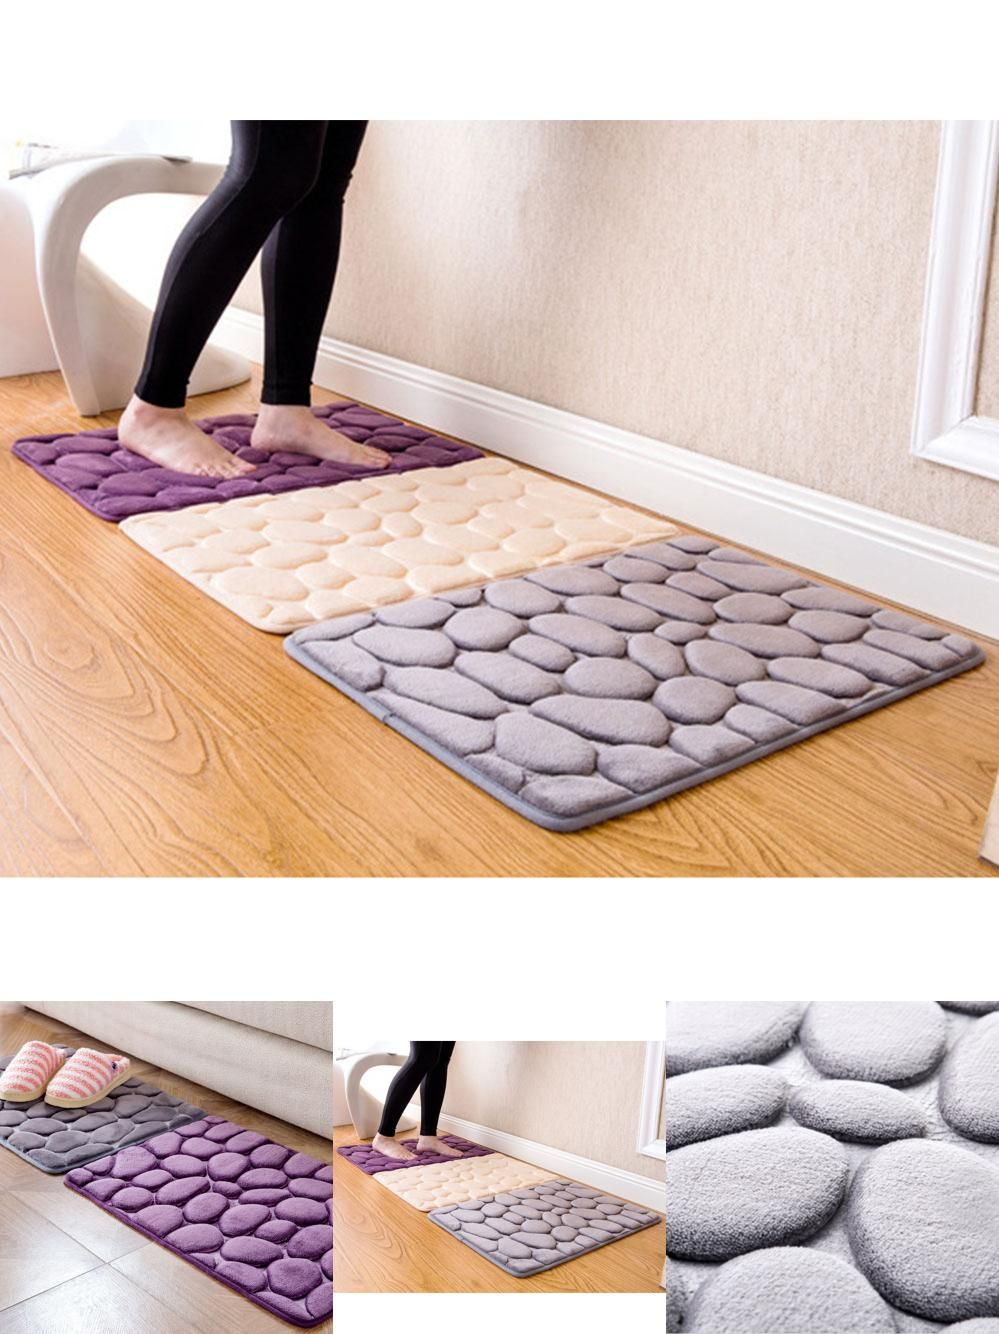 Visit To Buy 40x60cm Nonslip Carpet Floor Pebble Flannel Bathroom